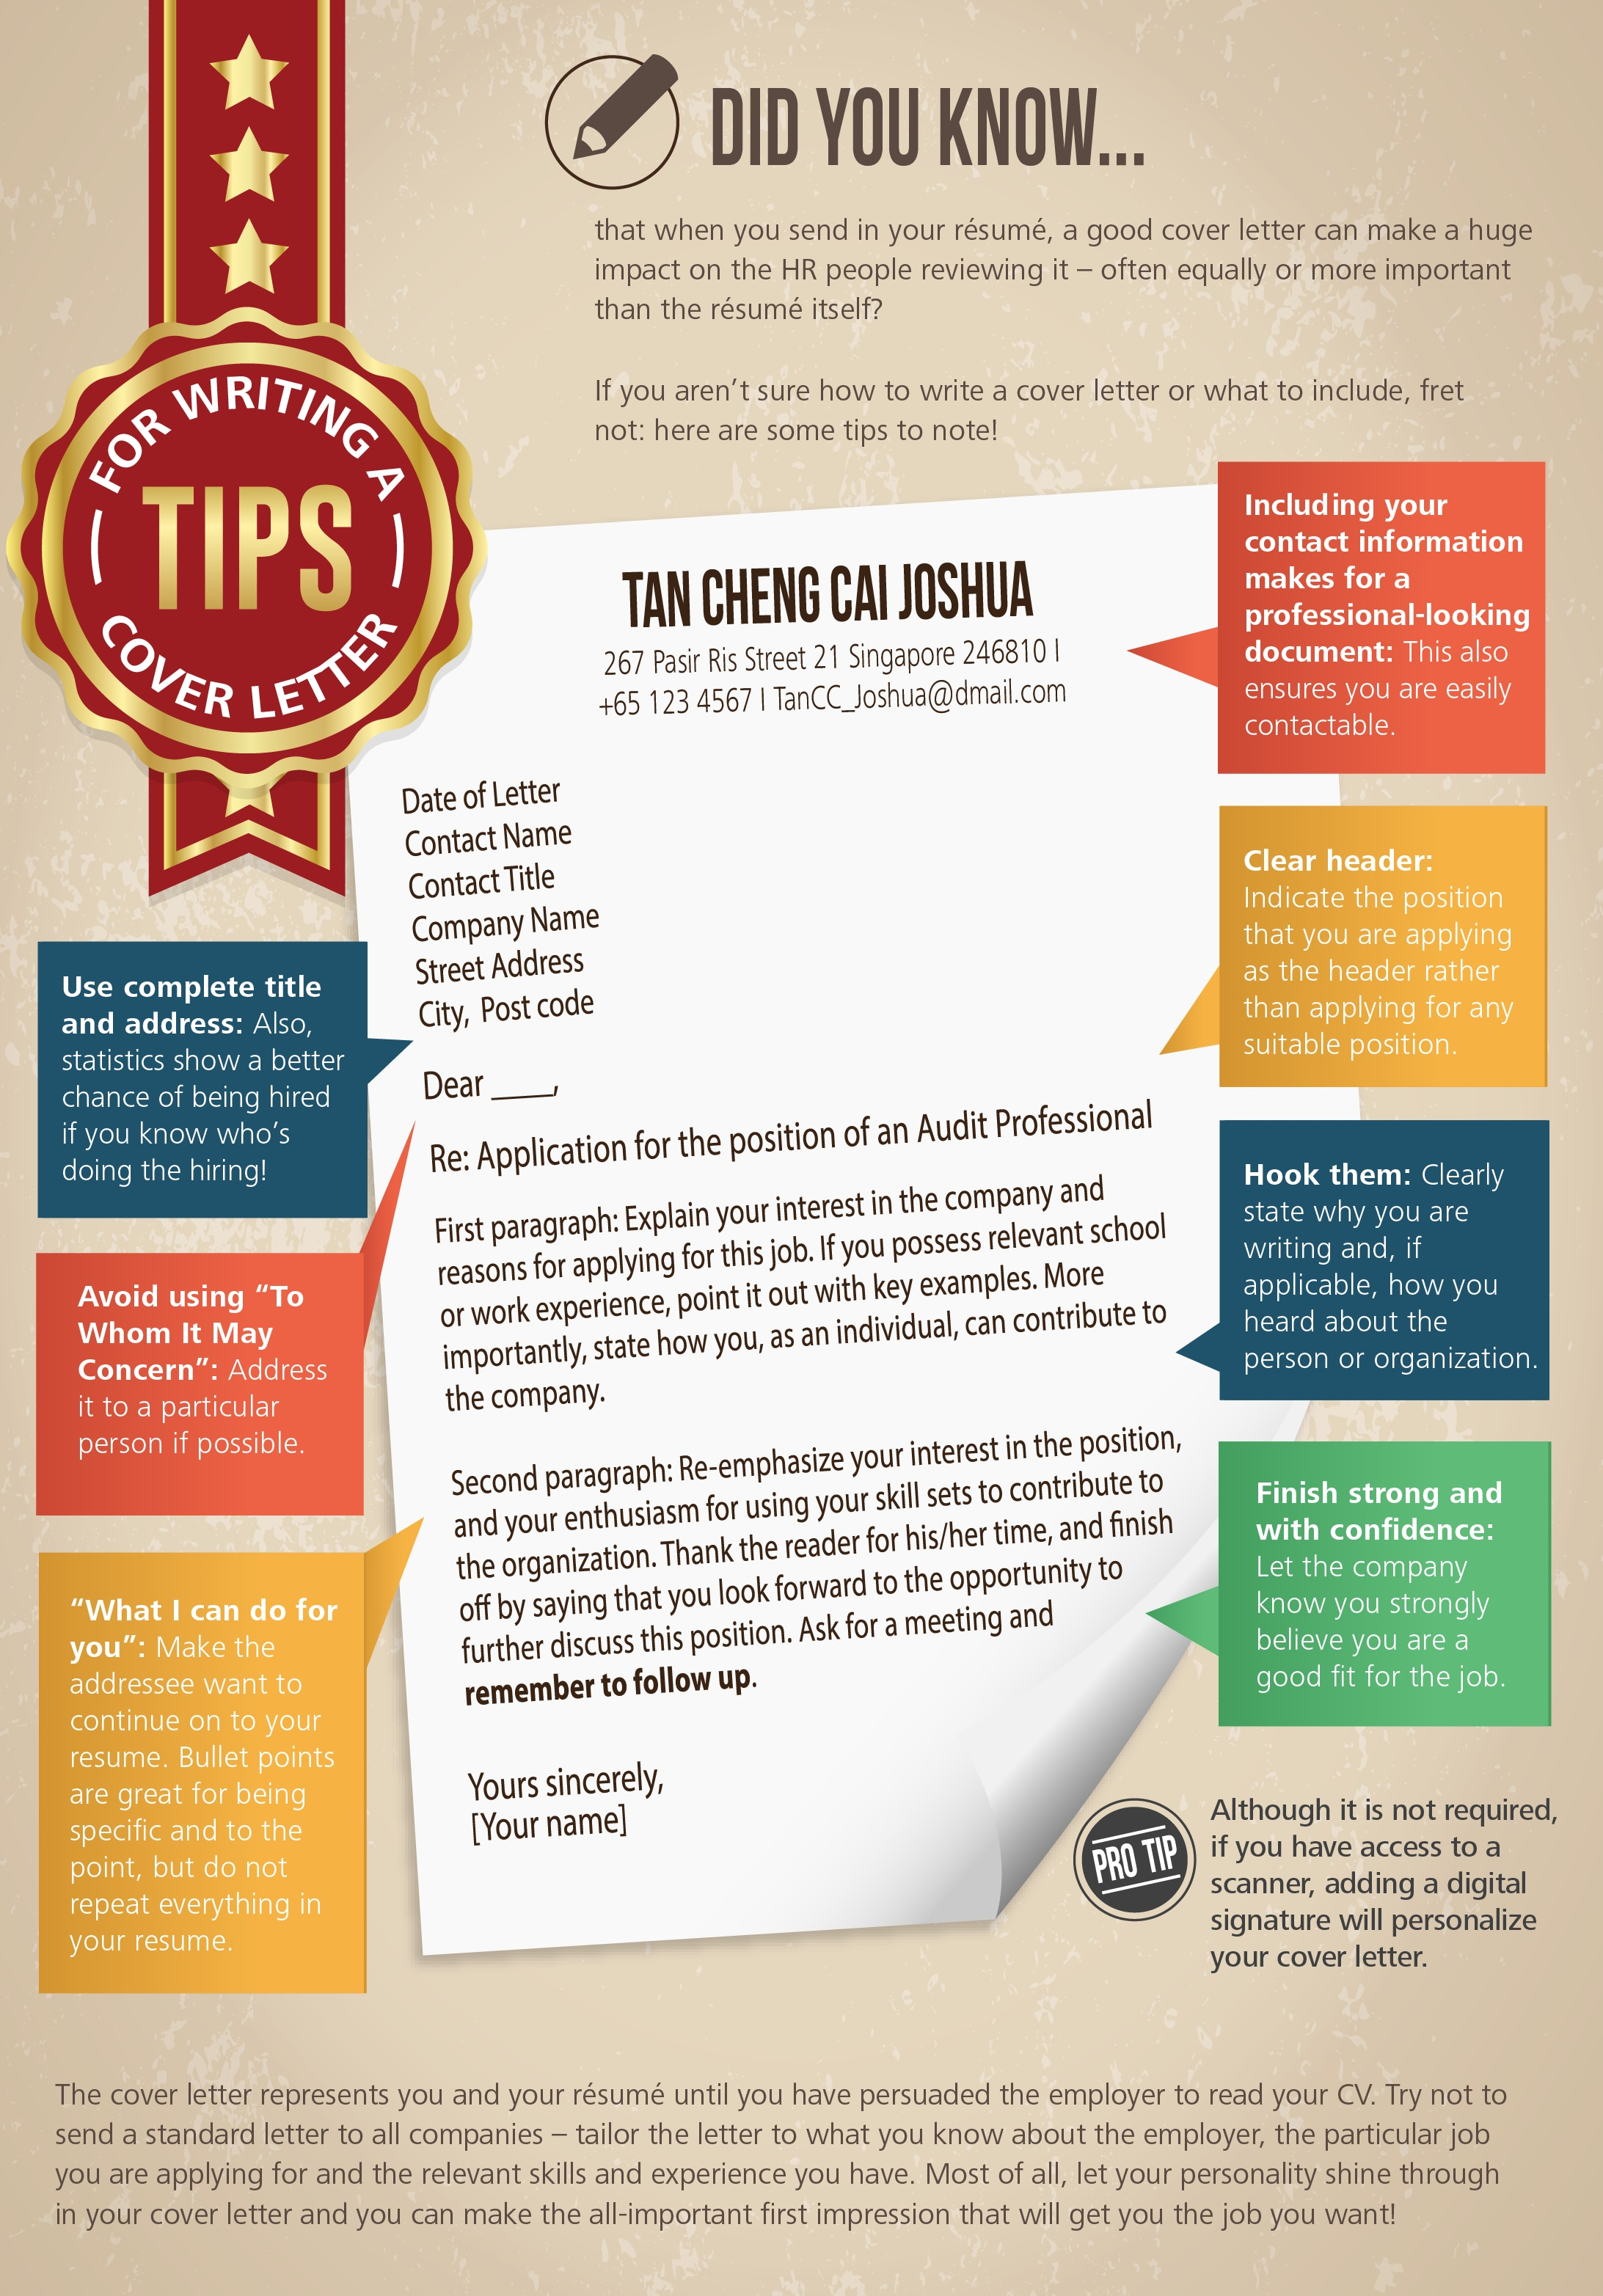 tips for writing a cover letter - Tips For Cover Letter Writing